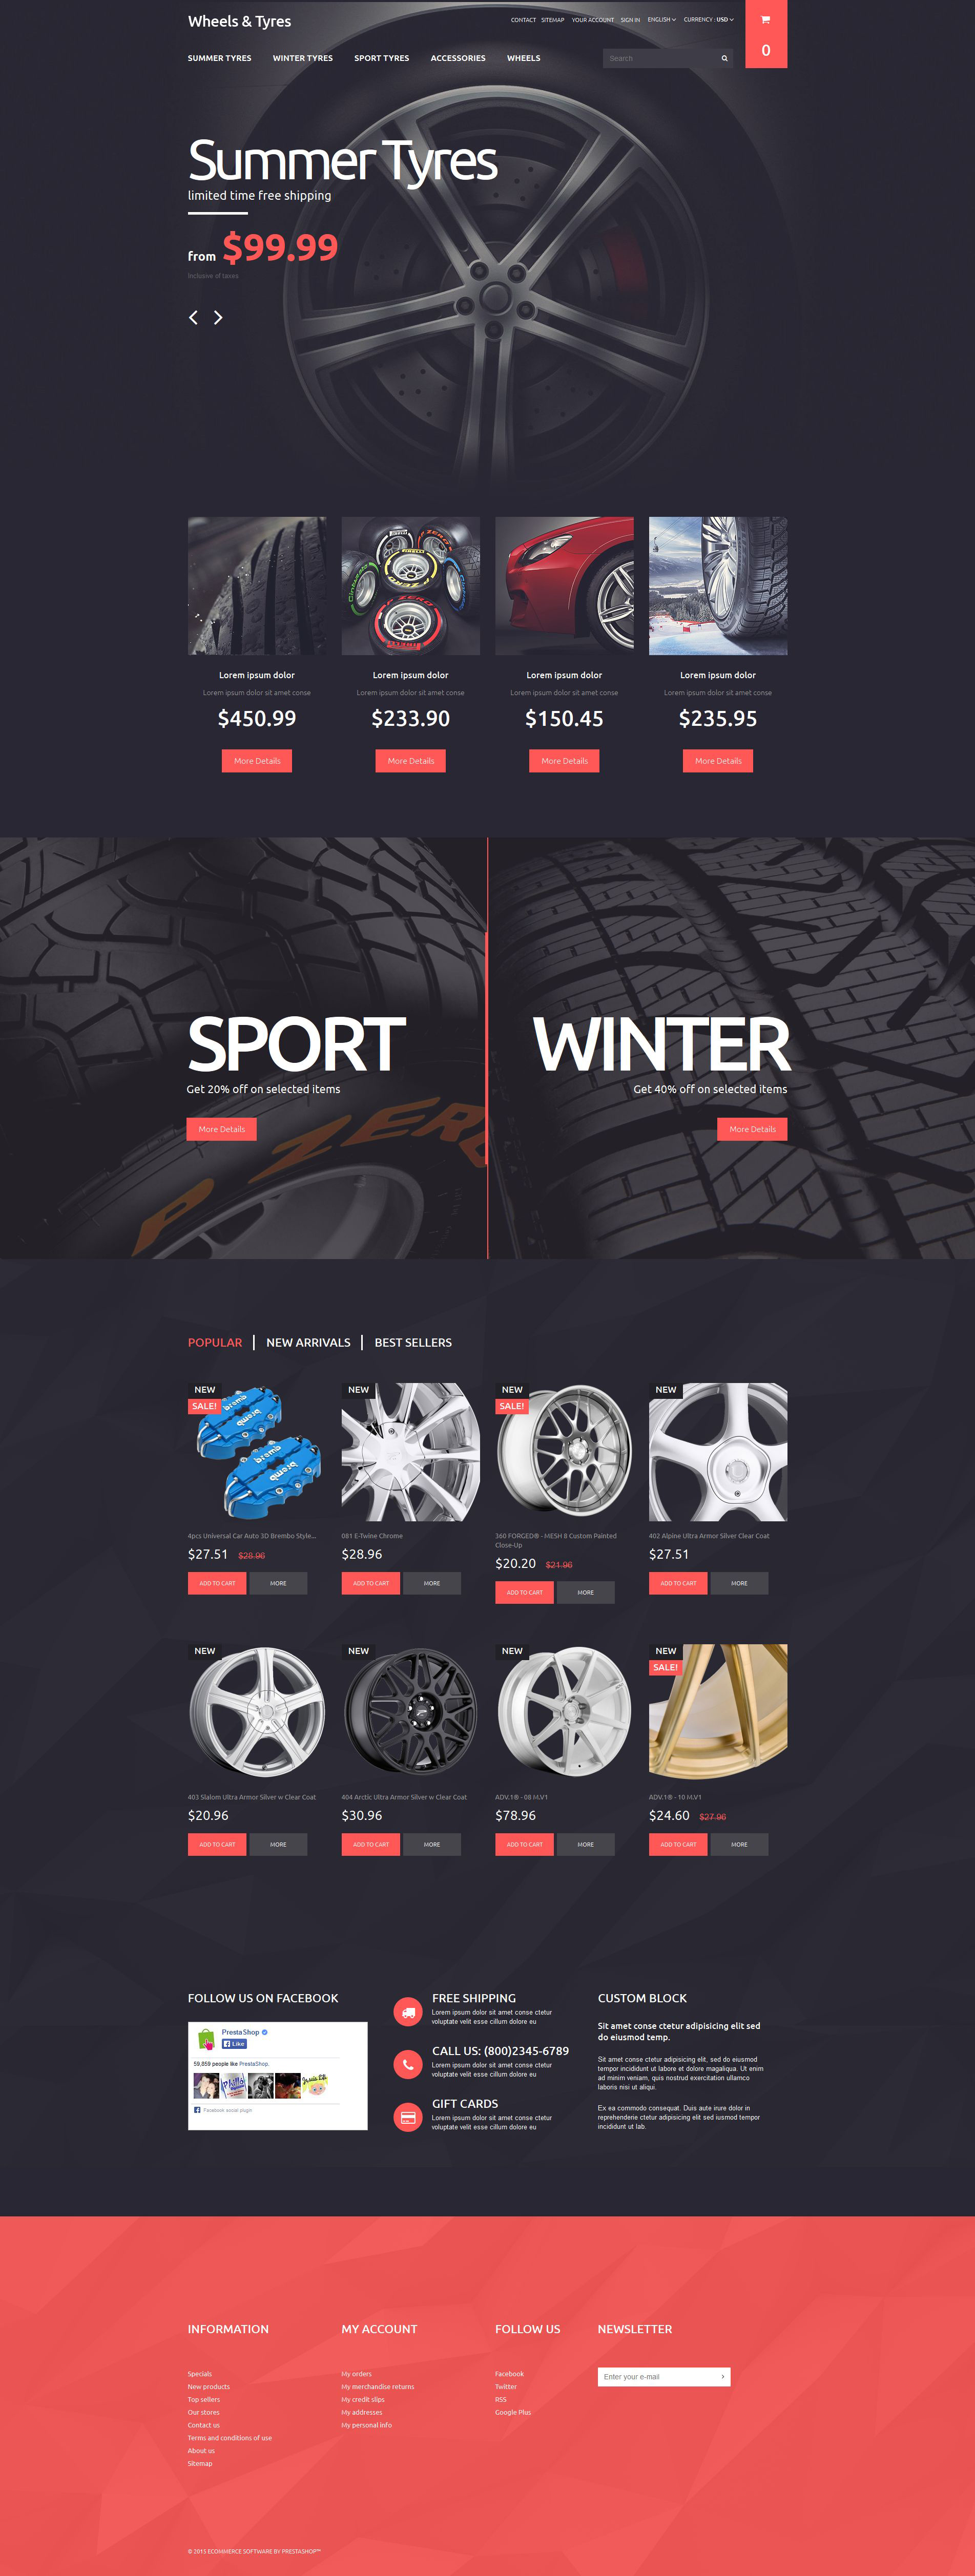 The Tyres Tires & Wheels Online Store PrestaShop Design 53314, one of the best PrestaShop themes of its kind (cars, most popular), also known as tyres Tires & Wheels online store PrestaShop template, car PrestaShop template, automobile engine PrestaShop template, valves PrestaShop template, spares PrestaShop template, parts PrestaShop template, filter PrestaShop template, gauges PrestaShop template, styling PrestaShop template, shop PrestaShop template, shopping cart PrestaShop template, speed and related with tyres Tires & Wheels online store, car, automobile engine, valves, spares, parts, filter, gauges, styling, shop, shopping cart, speed, etc.